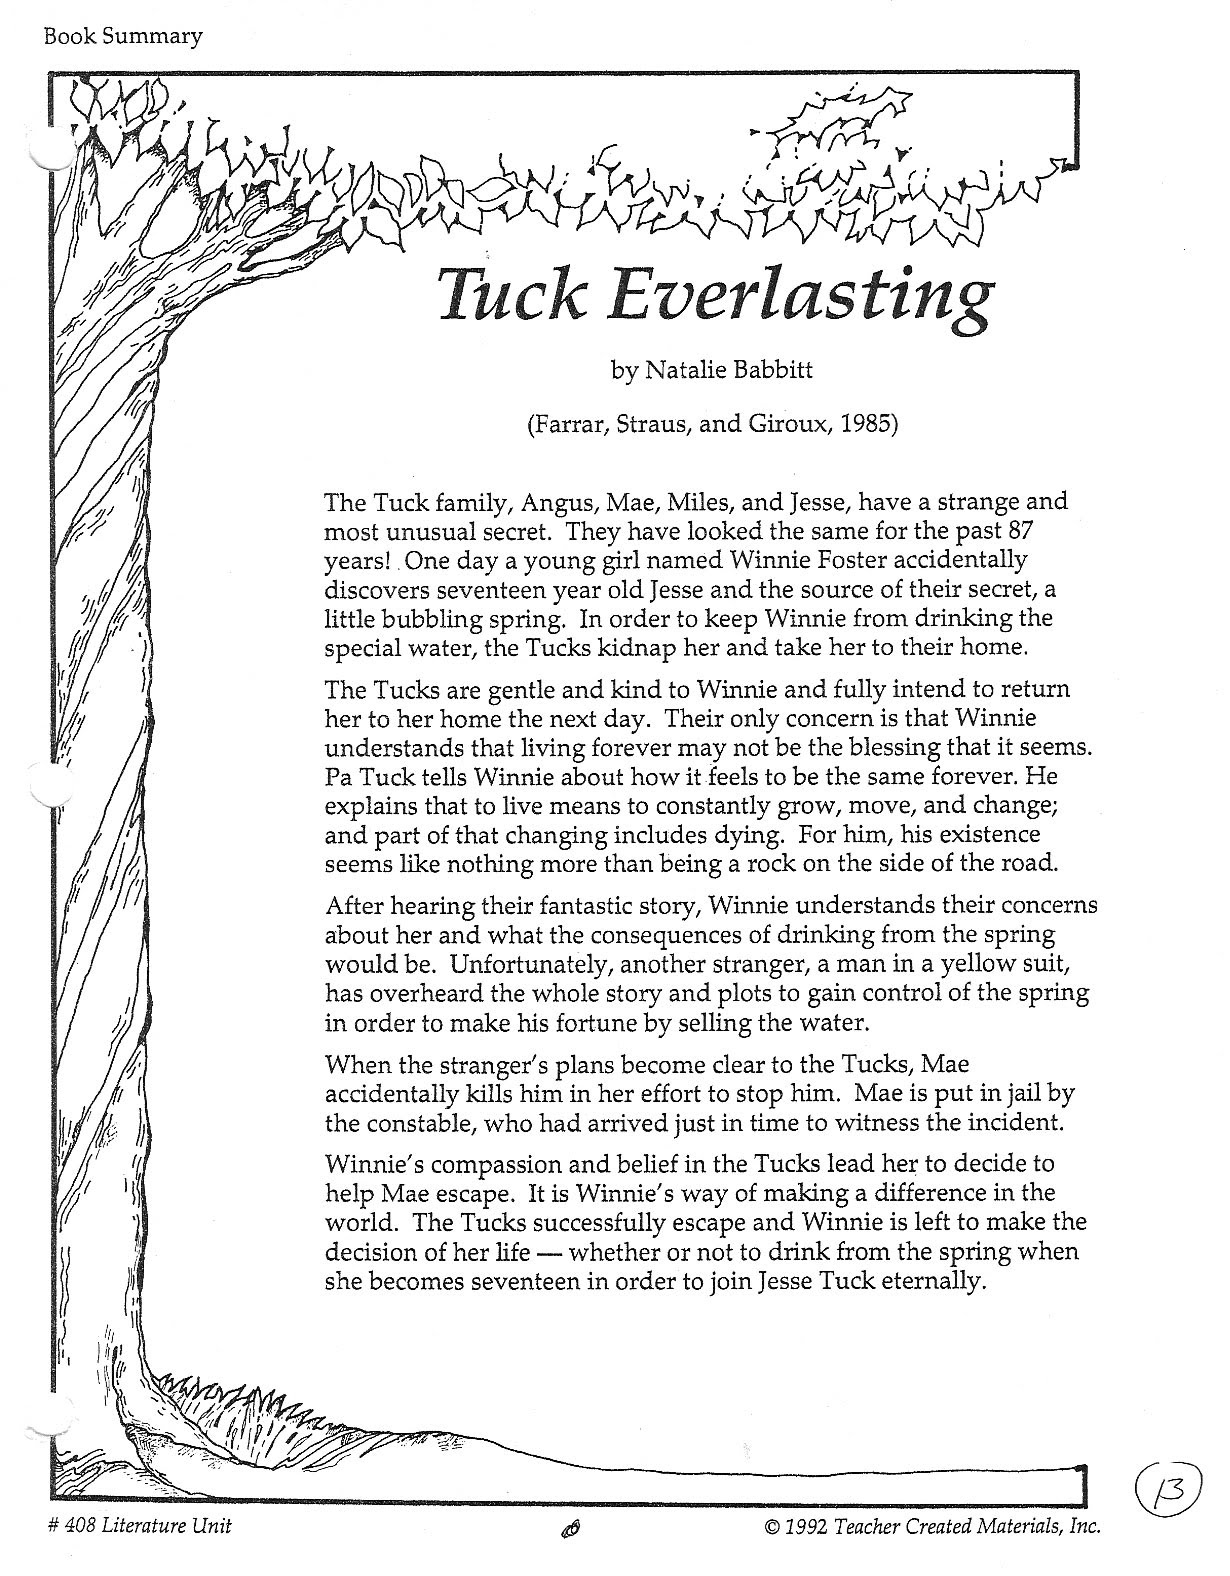 tuck everlasting essay example Natalie babbitt's tuck everlasting speaks about an eternal concern of humanity, that of immortality in doing so it also touches upon what it means to live, to.